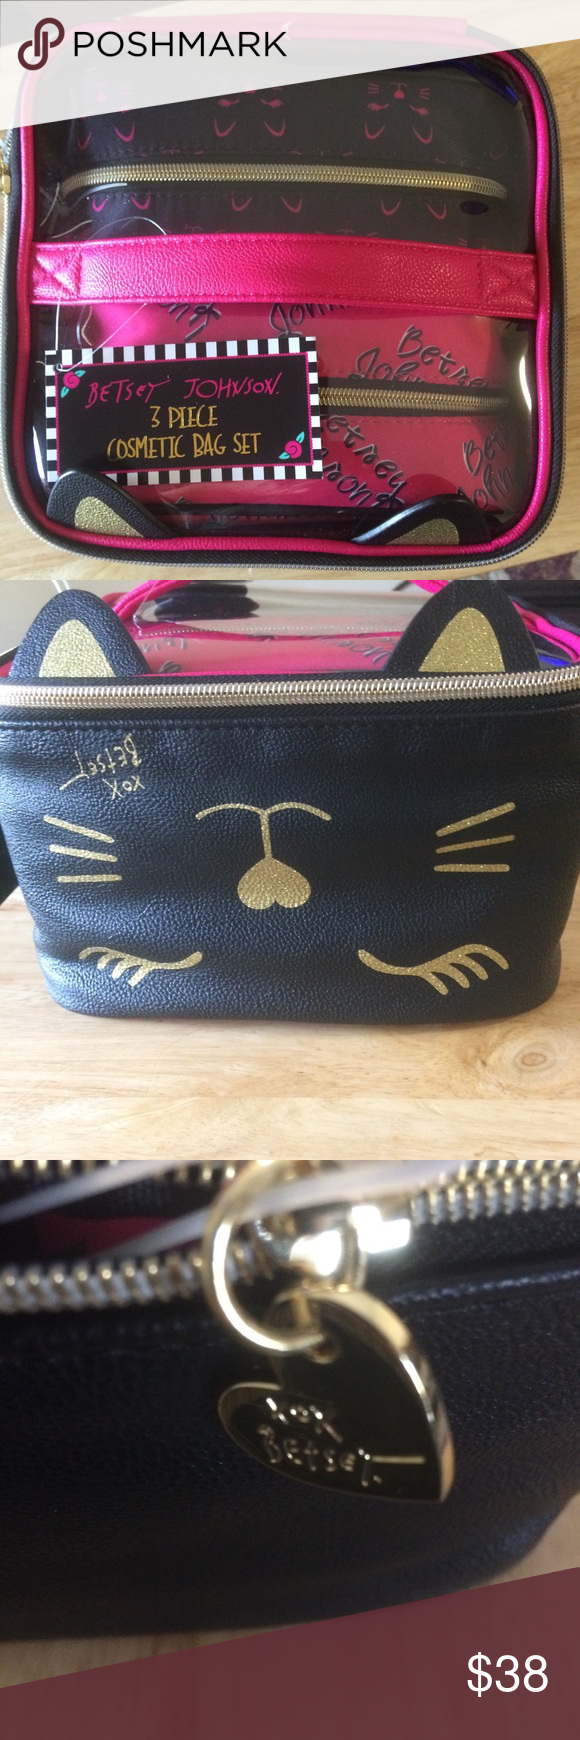 NWT BETSEY Johnson Cat 3 pc. Cosmetic bag set Cute 3 piece cosmetic bag set  by BETSEY Johnson Cat design Hot pink and black Train case Gold hardware  Betsey ... 0d50d73d0482d